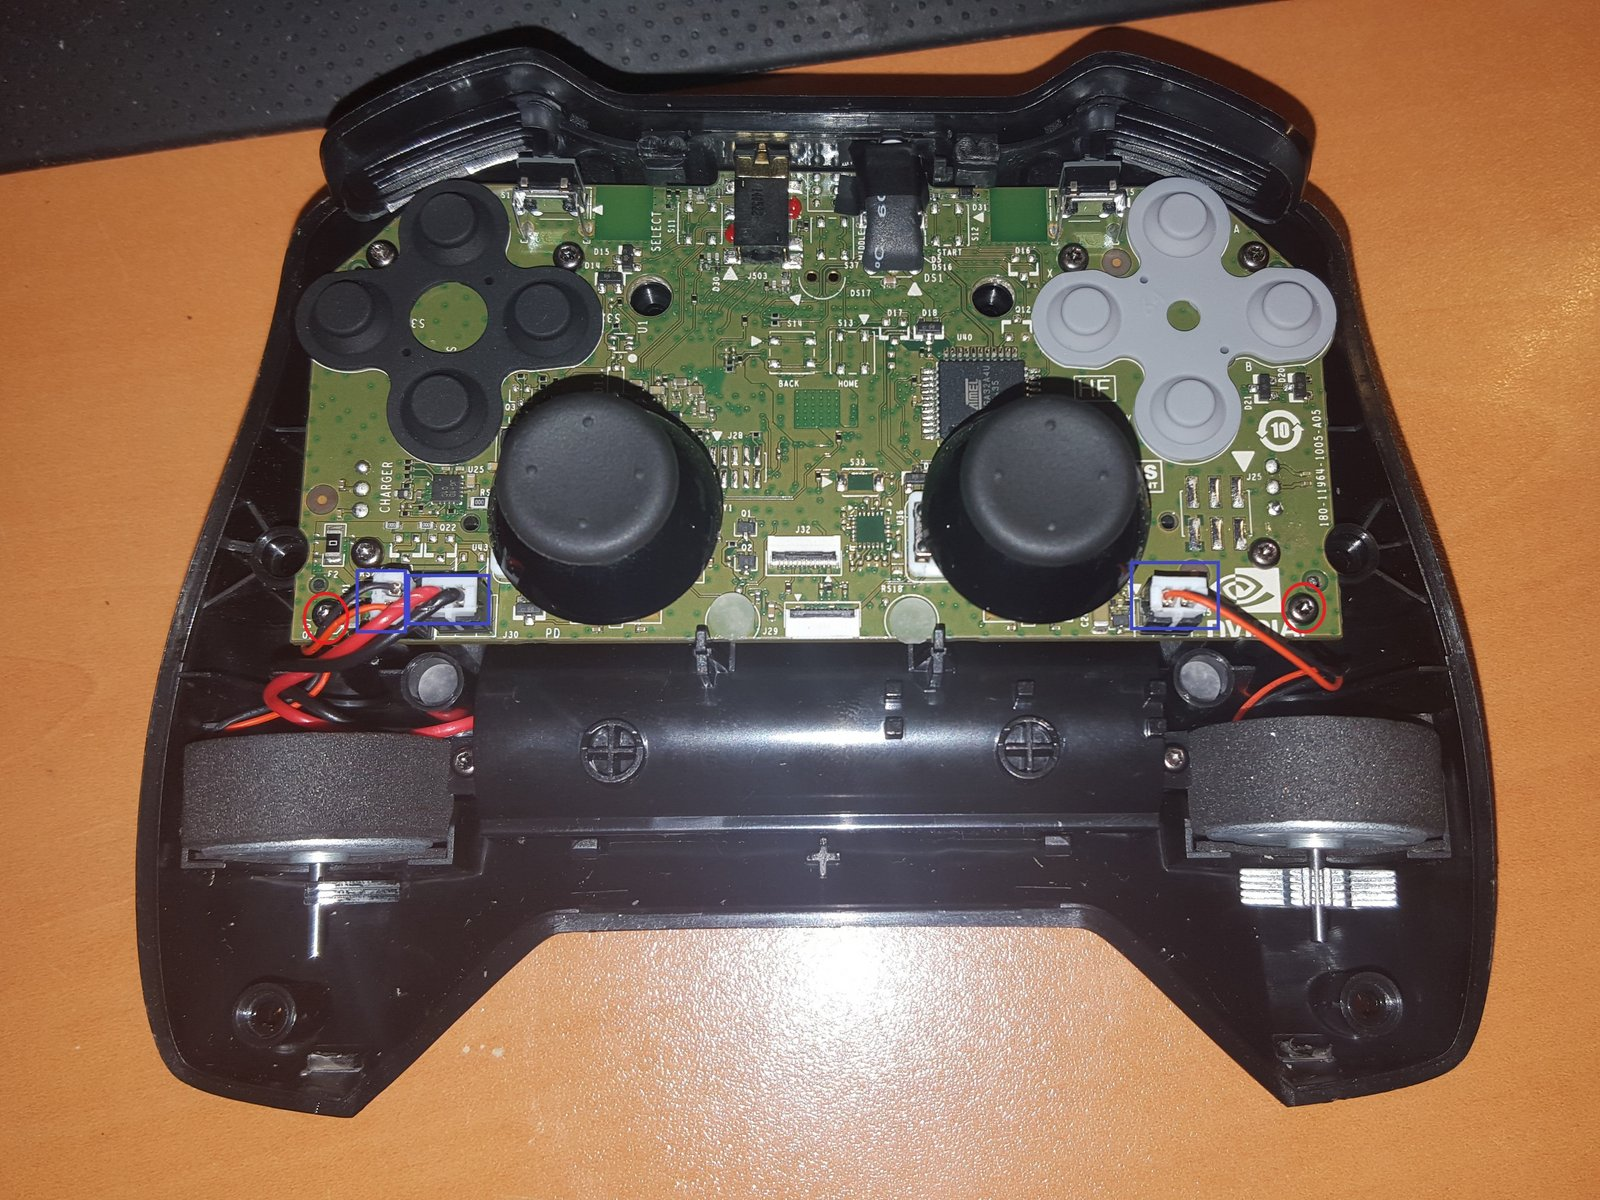 Shield controller working in any game, on any PC with new